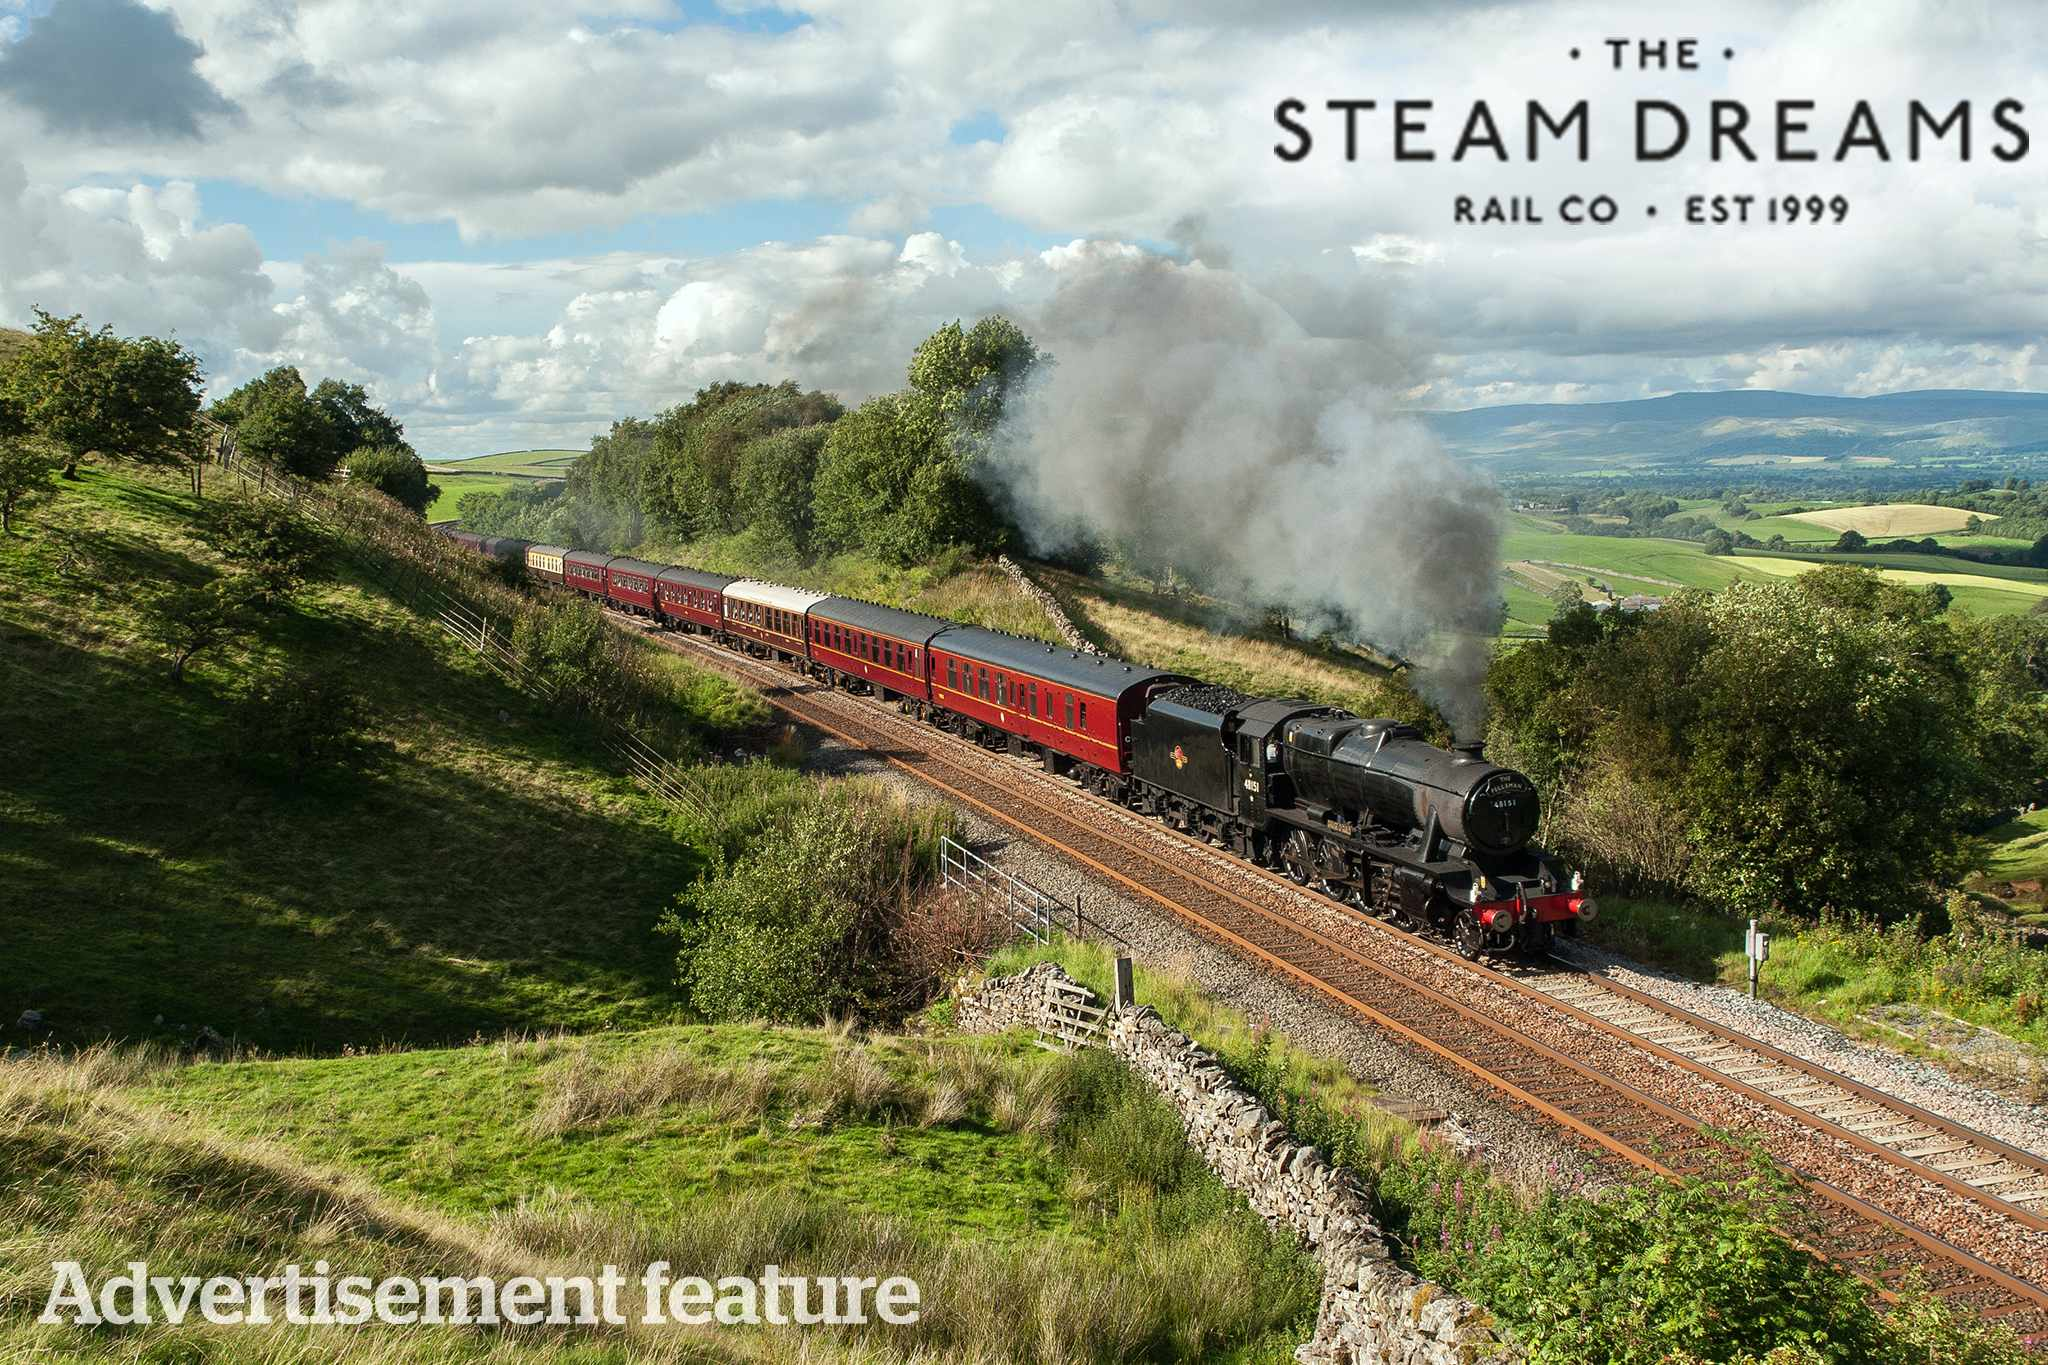 2048x1365_2-nov-steam-dreams-rail-co-thumb